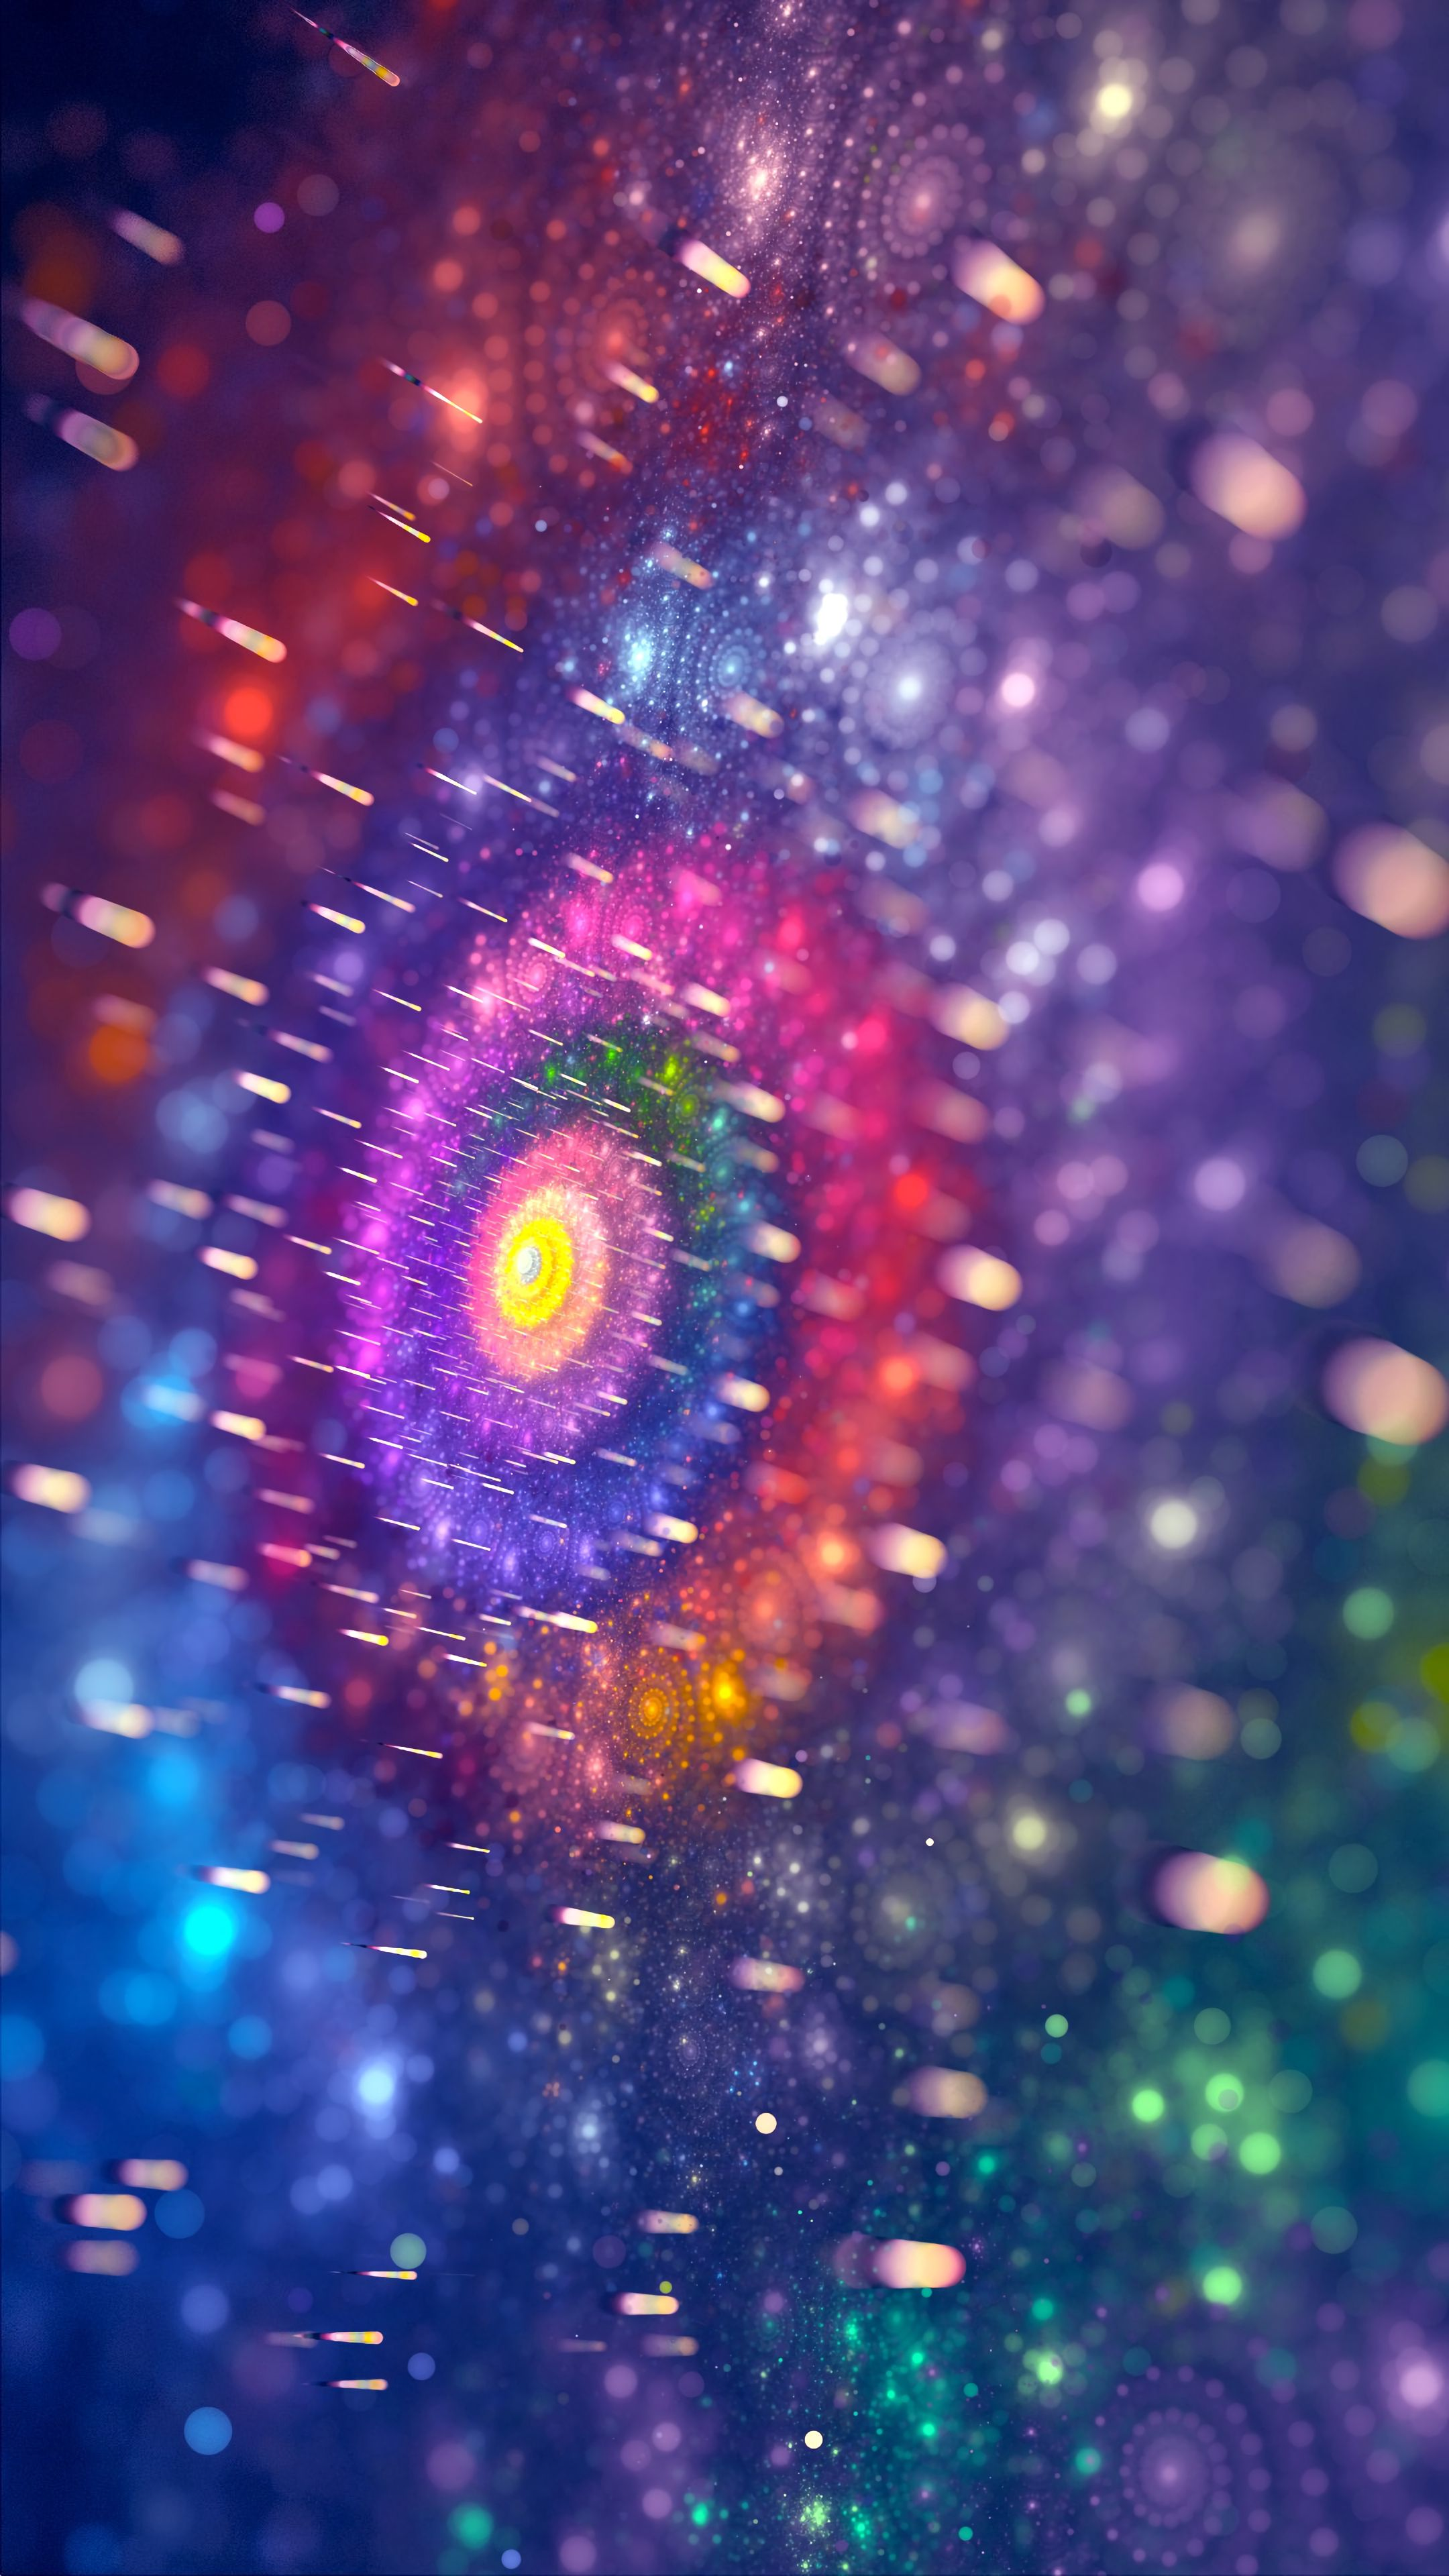 105694 download wallpaper Abstract, Fractal, Shine, Brilliance, Circles, Multicolored, Motley, Patterns screensavers and pictures for free